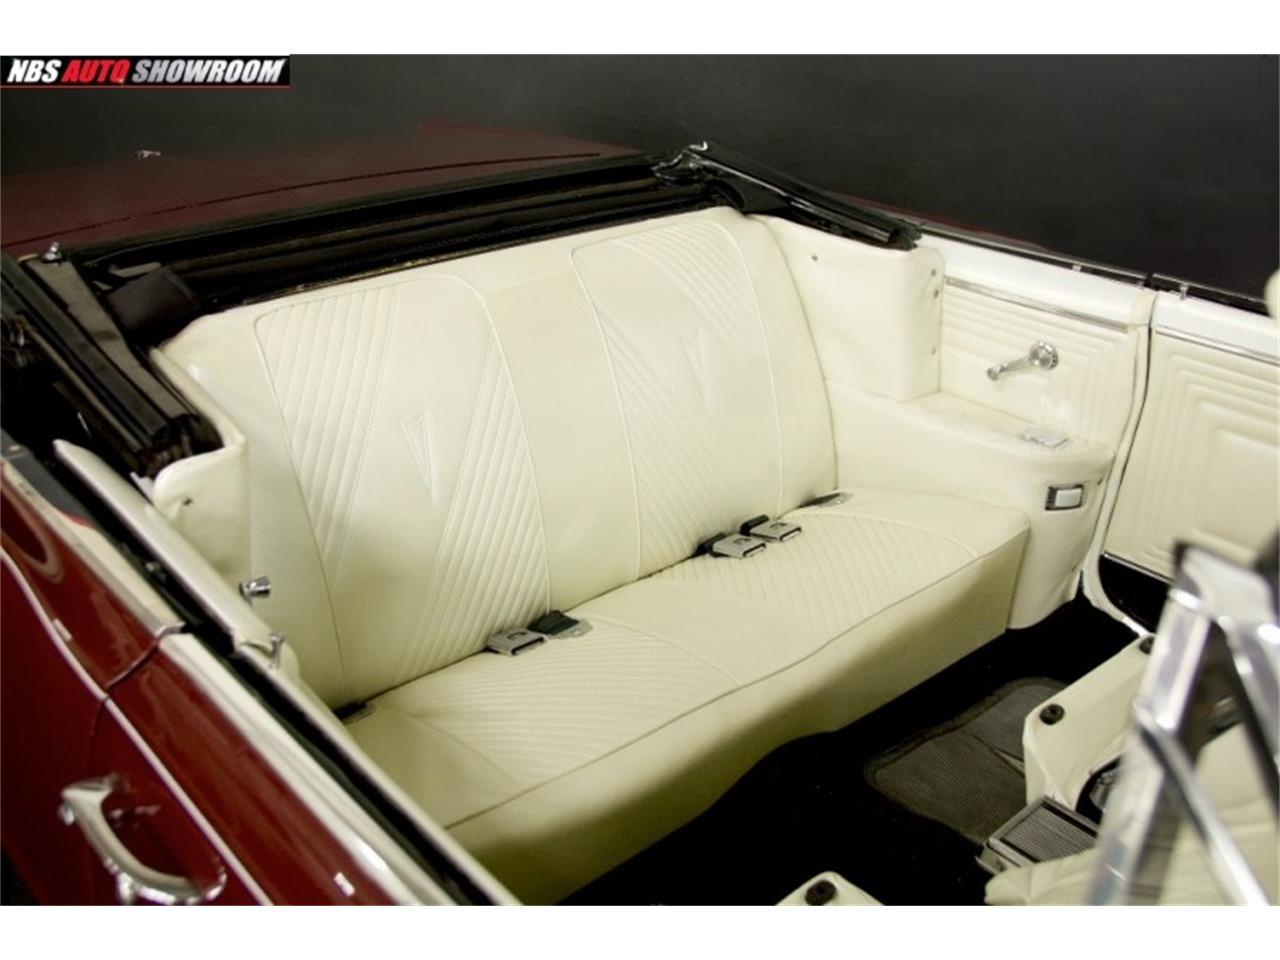 Large Picture of '65 GTO located in Milpitas California - $55,547.00 Offered by NBS Auto Showroom - OWIJ